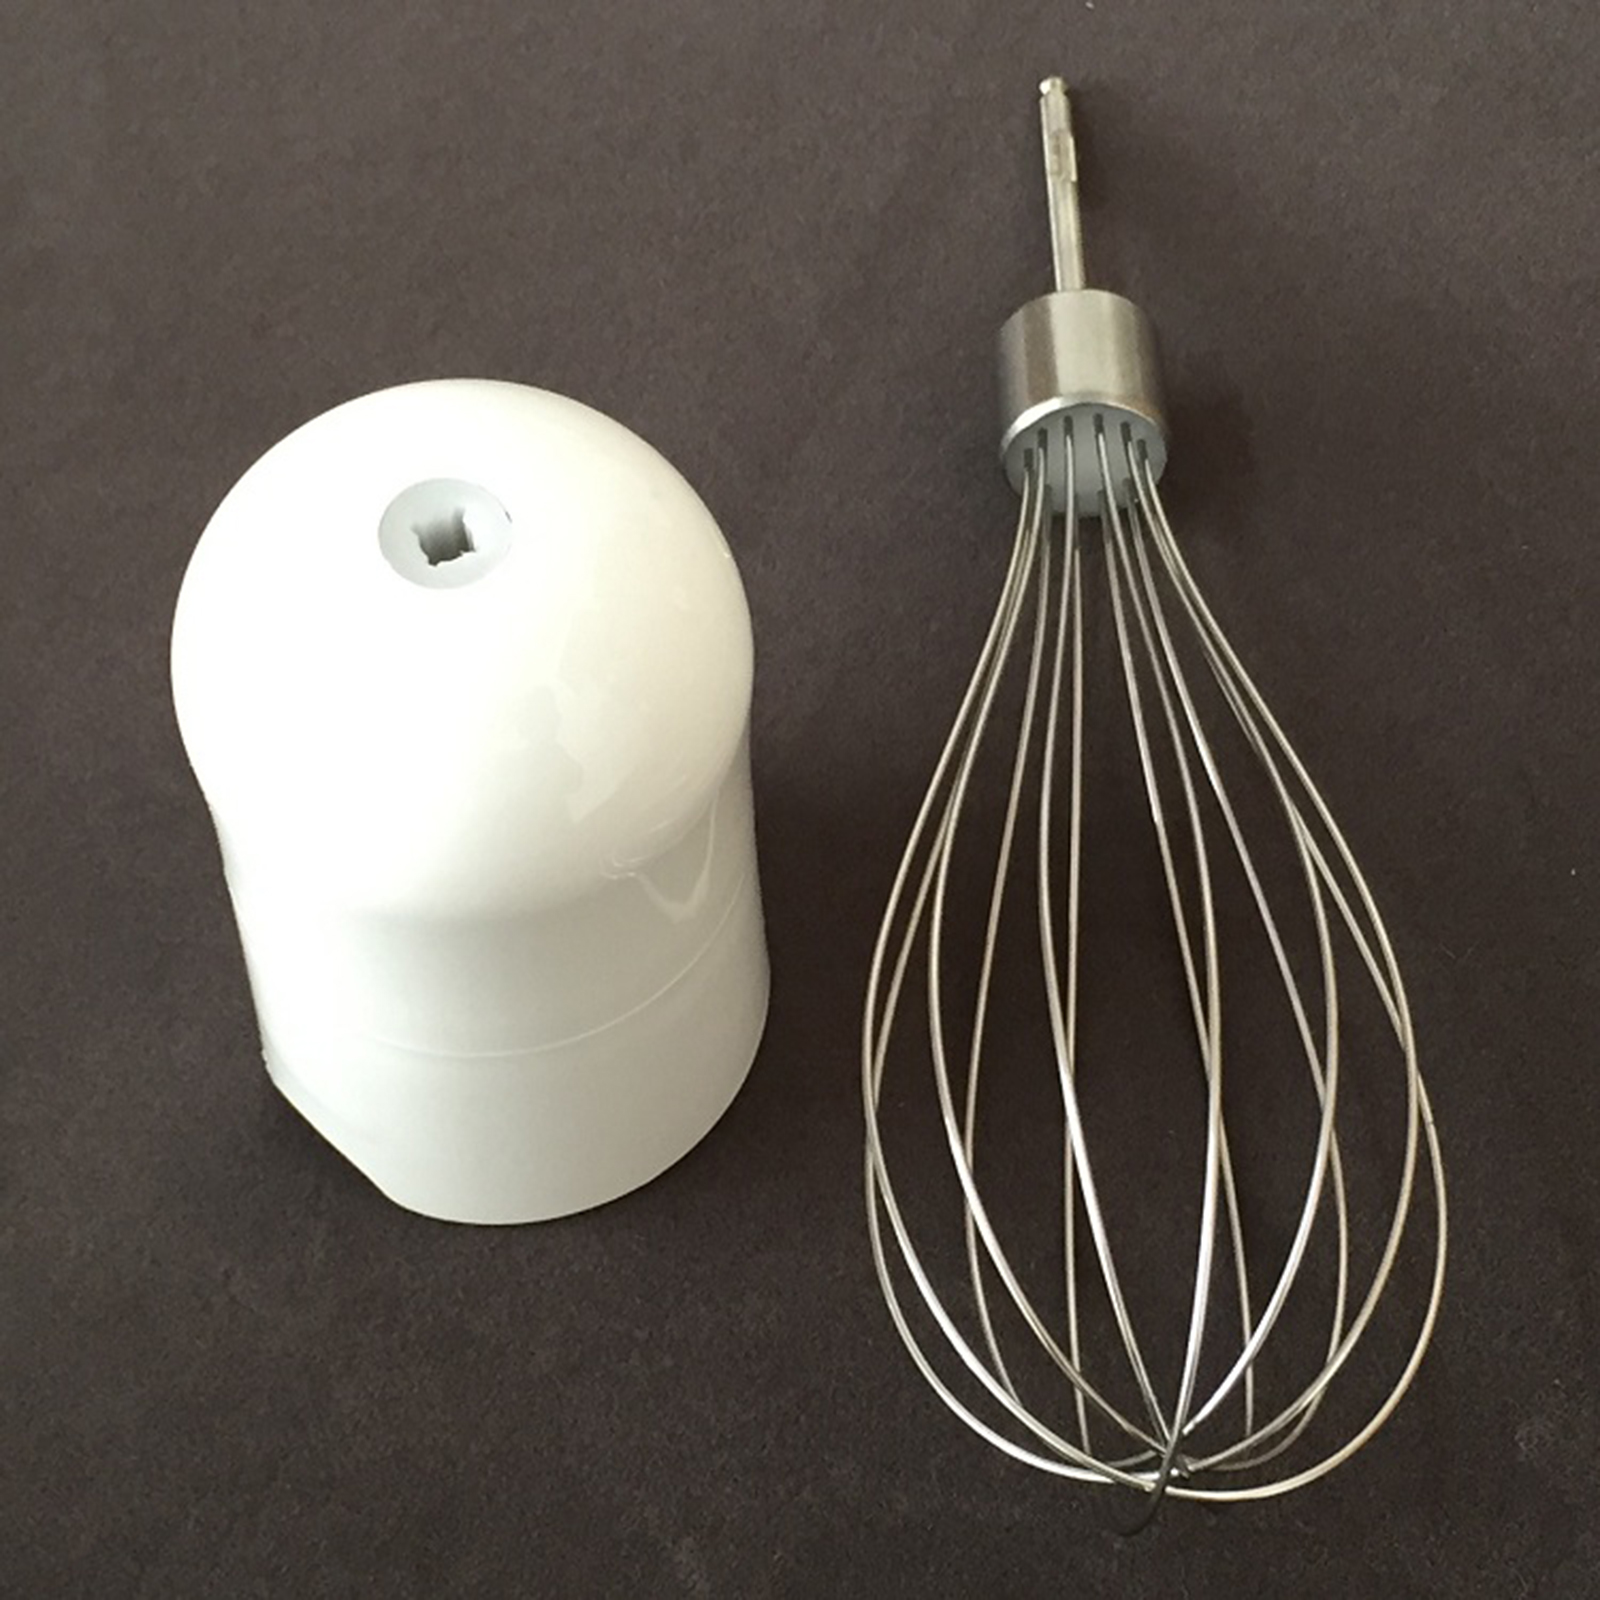 1PC Egg Beater For Philips HR1601 HR1603 HR1604 HR1607 HR1608 HR1609 Blender Accessories For Philips Mixer Couplings Parts